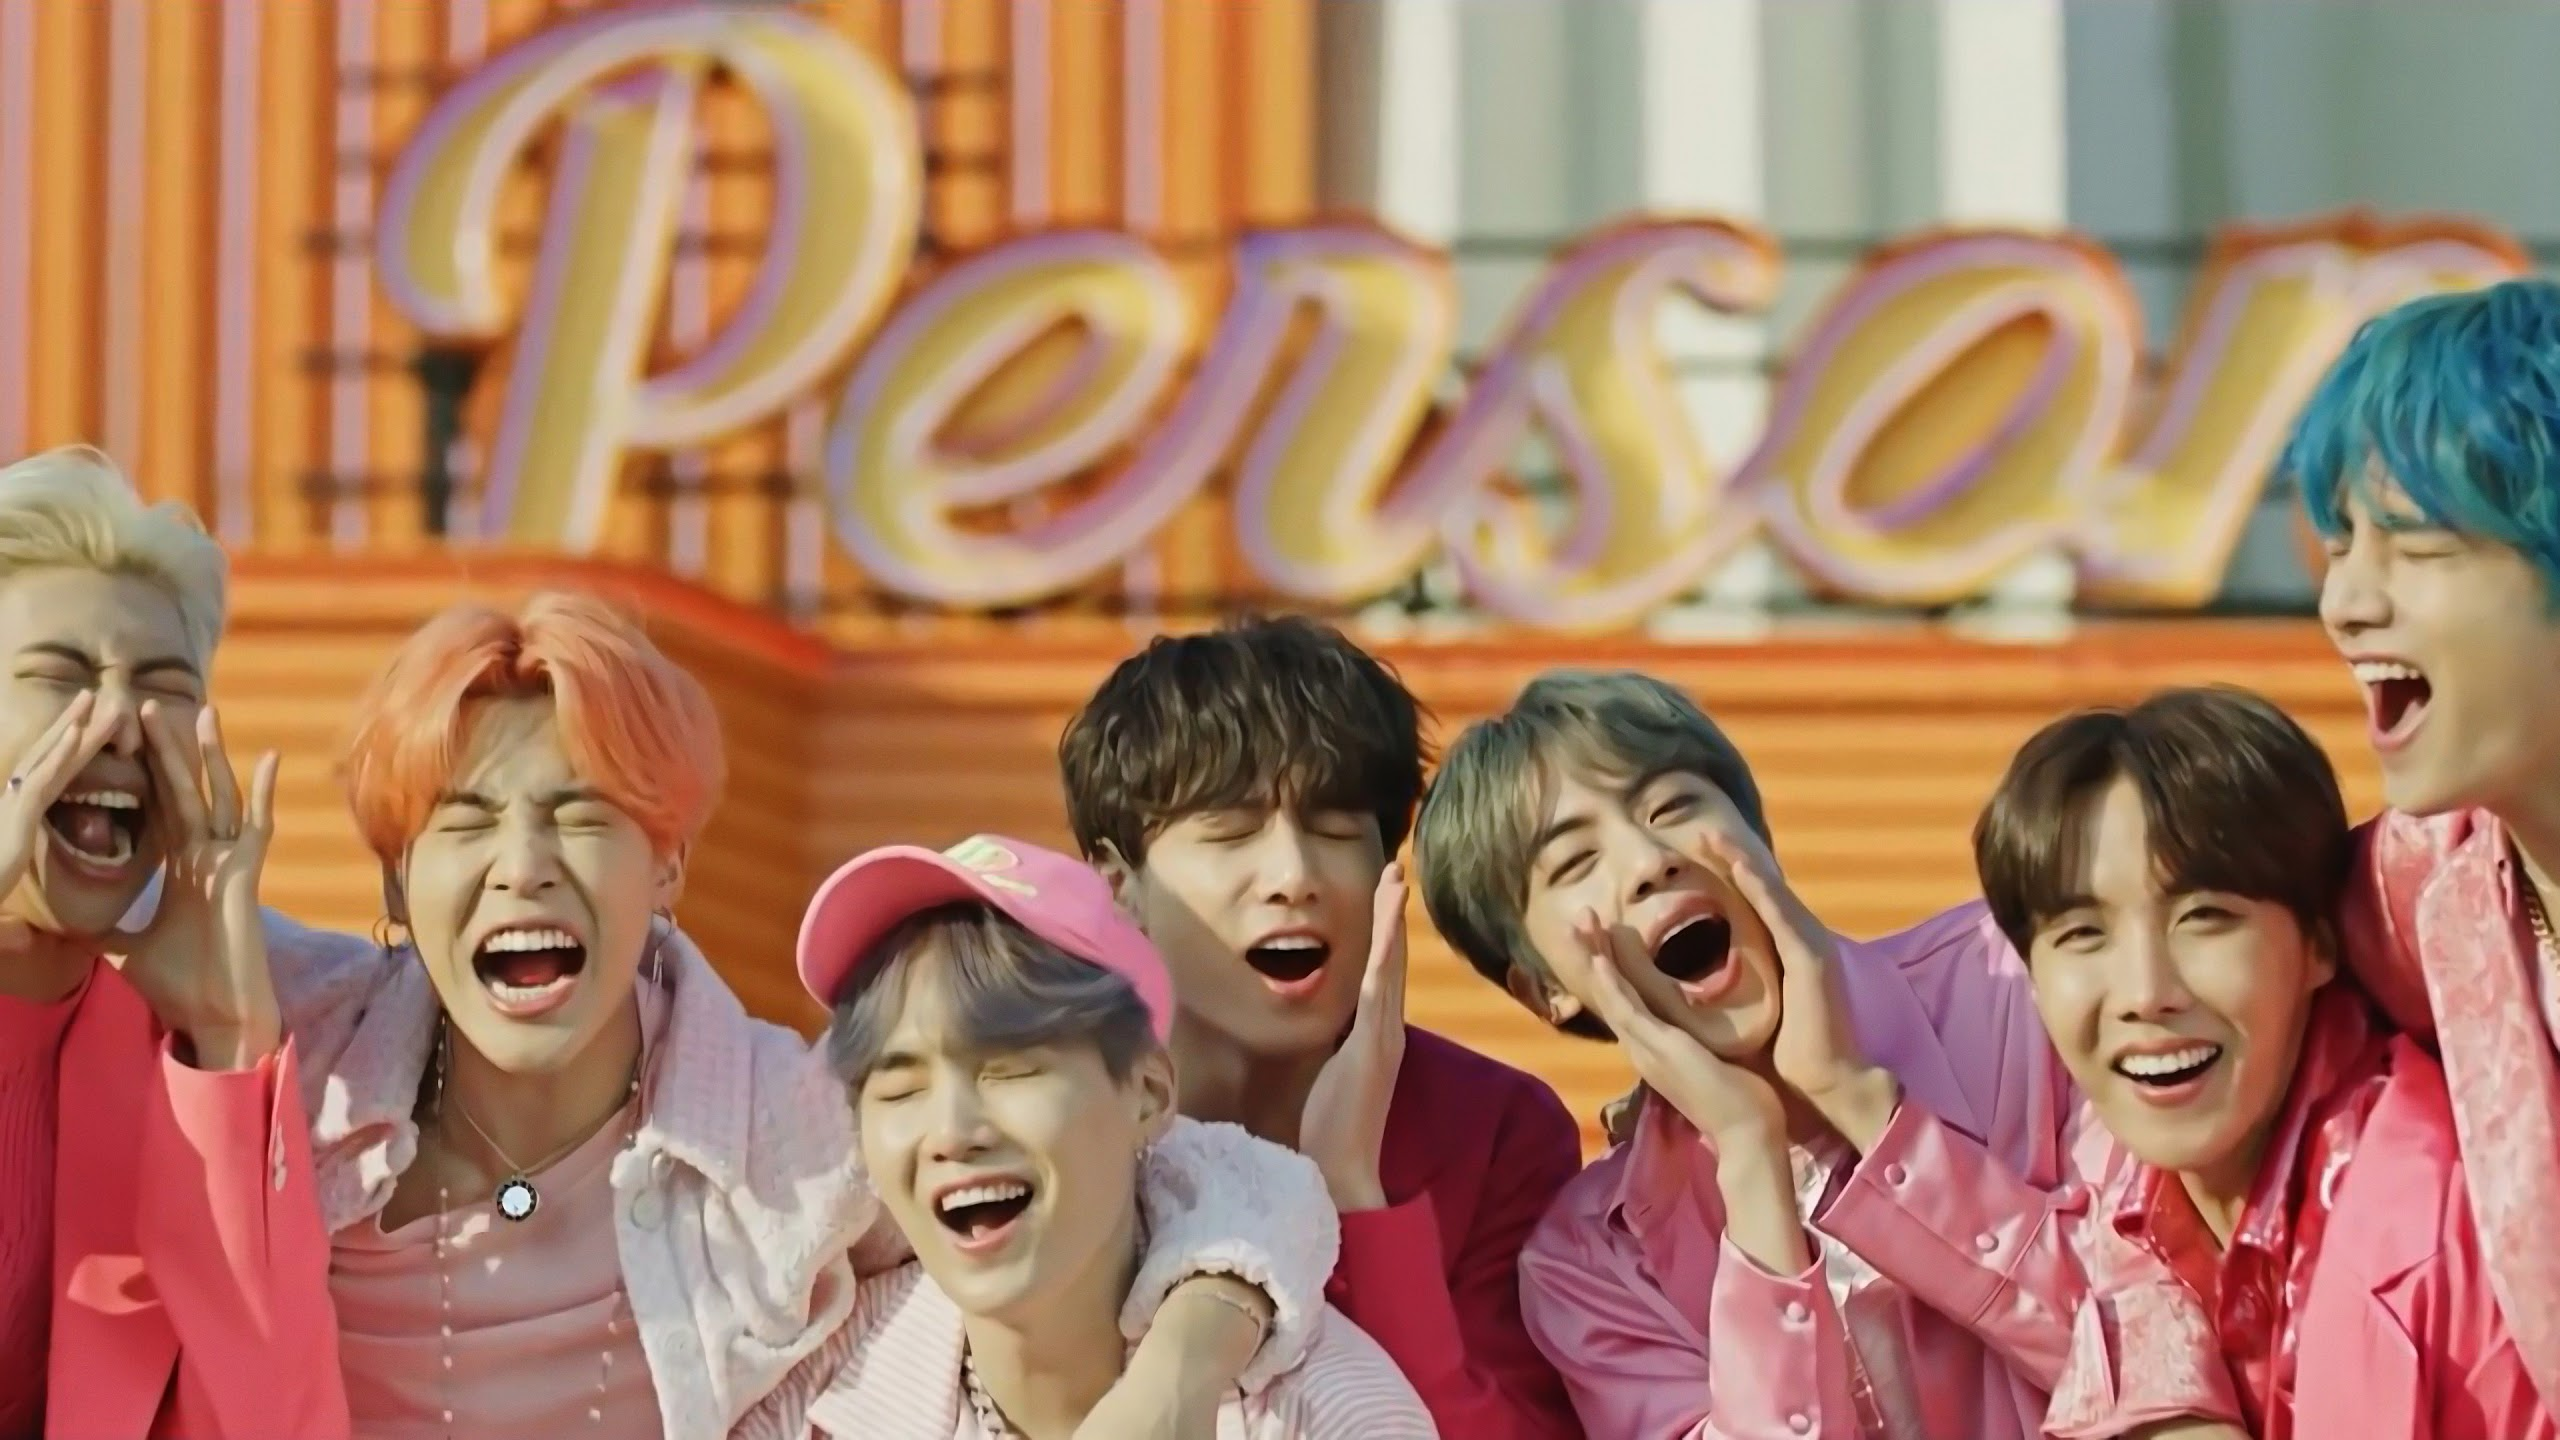 Quad Hd Bts Map Of The Soul Persona, Hd Wallpapers